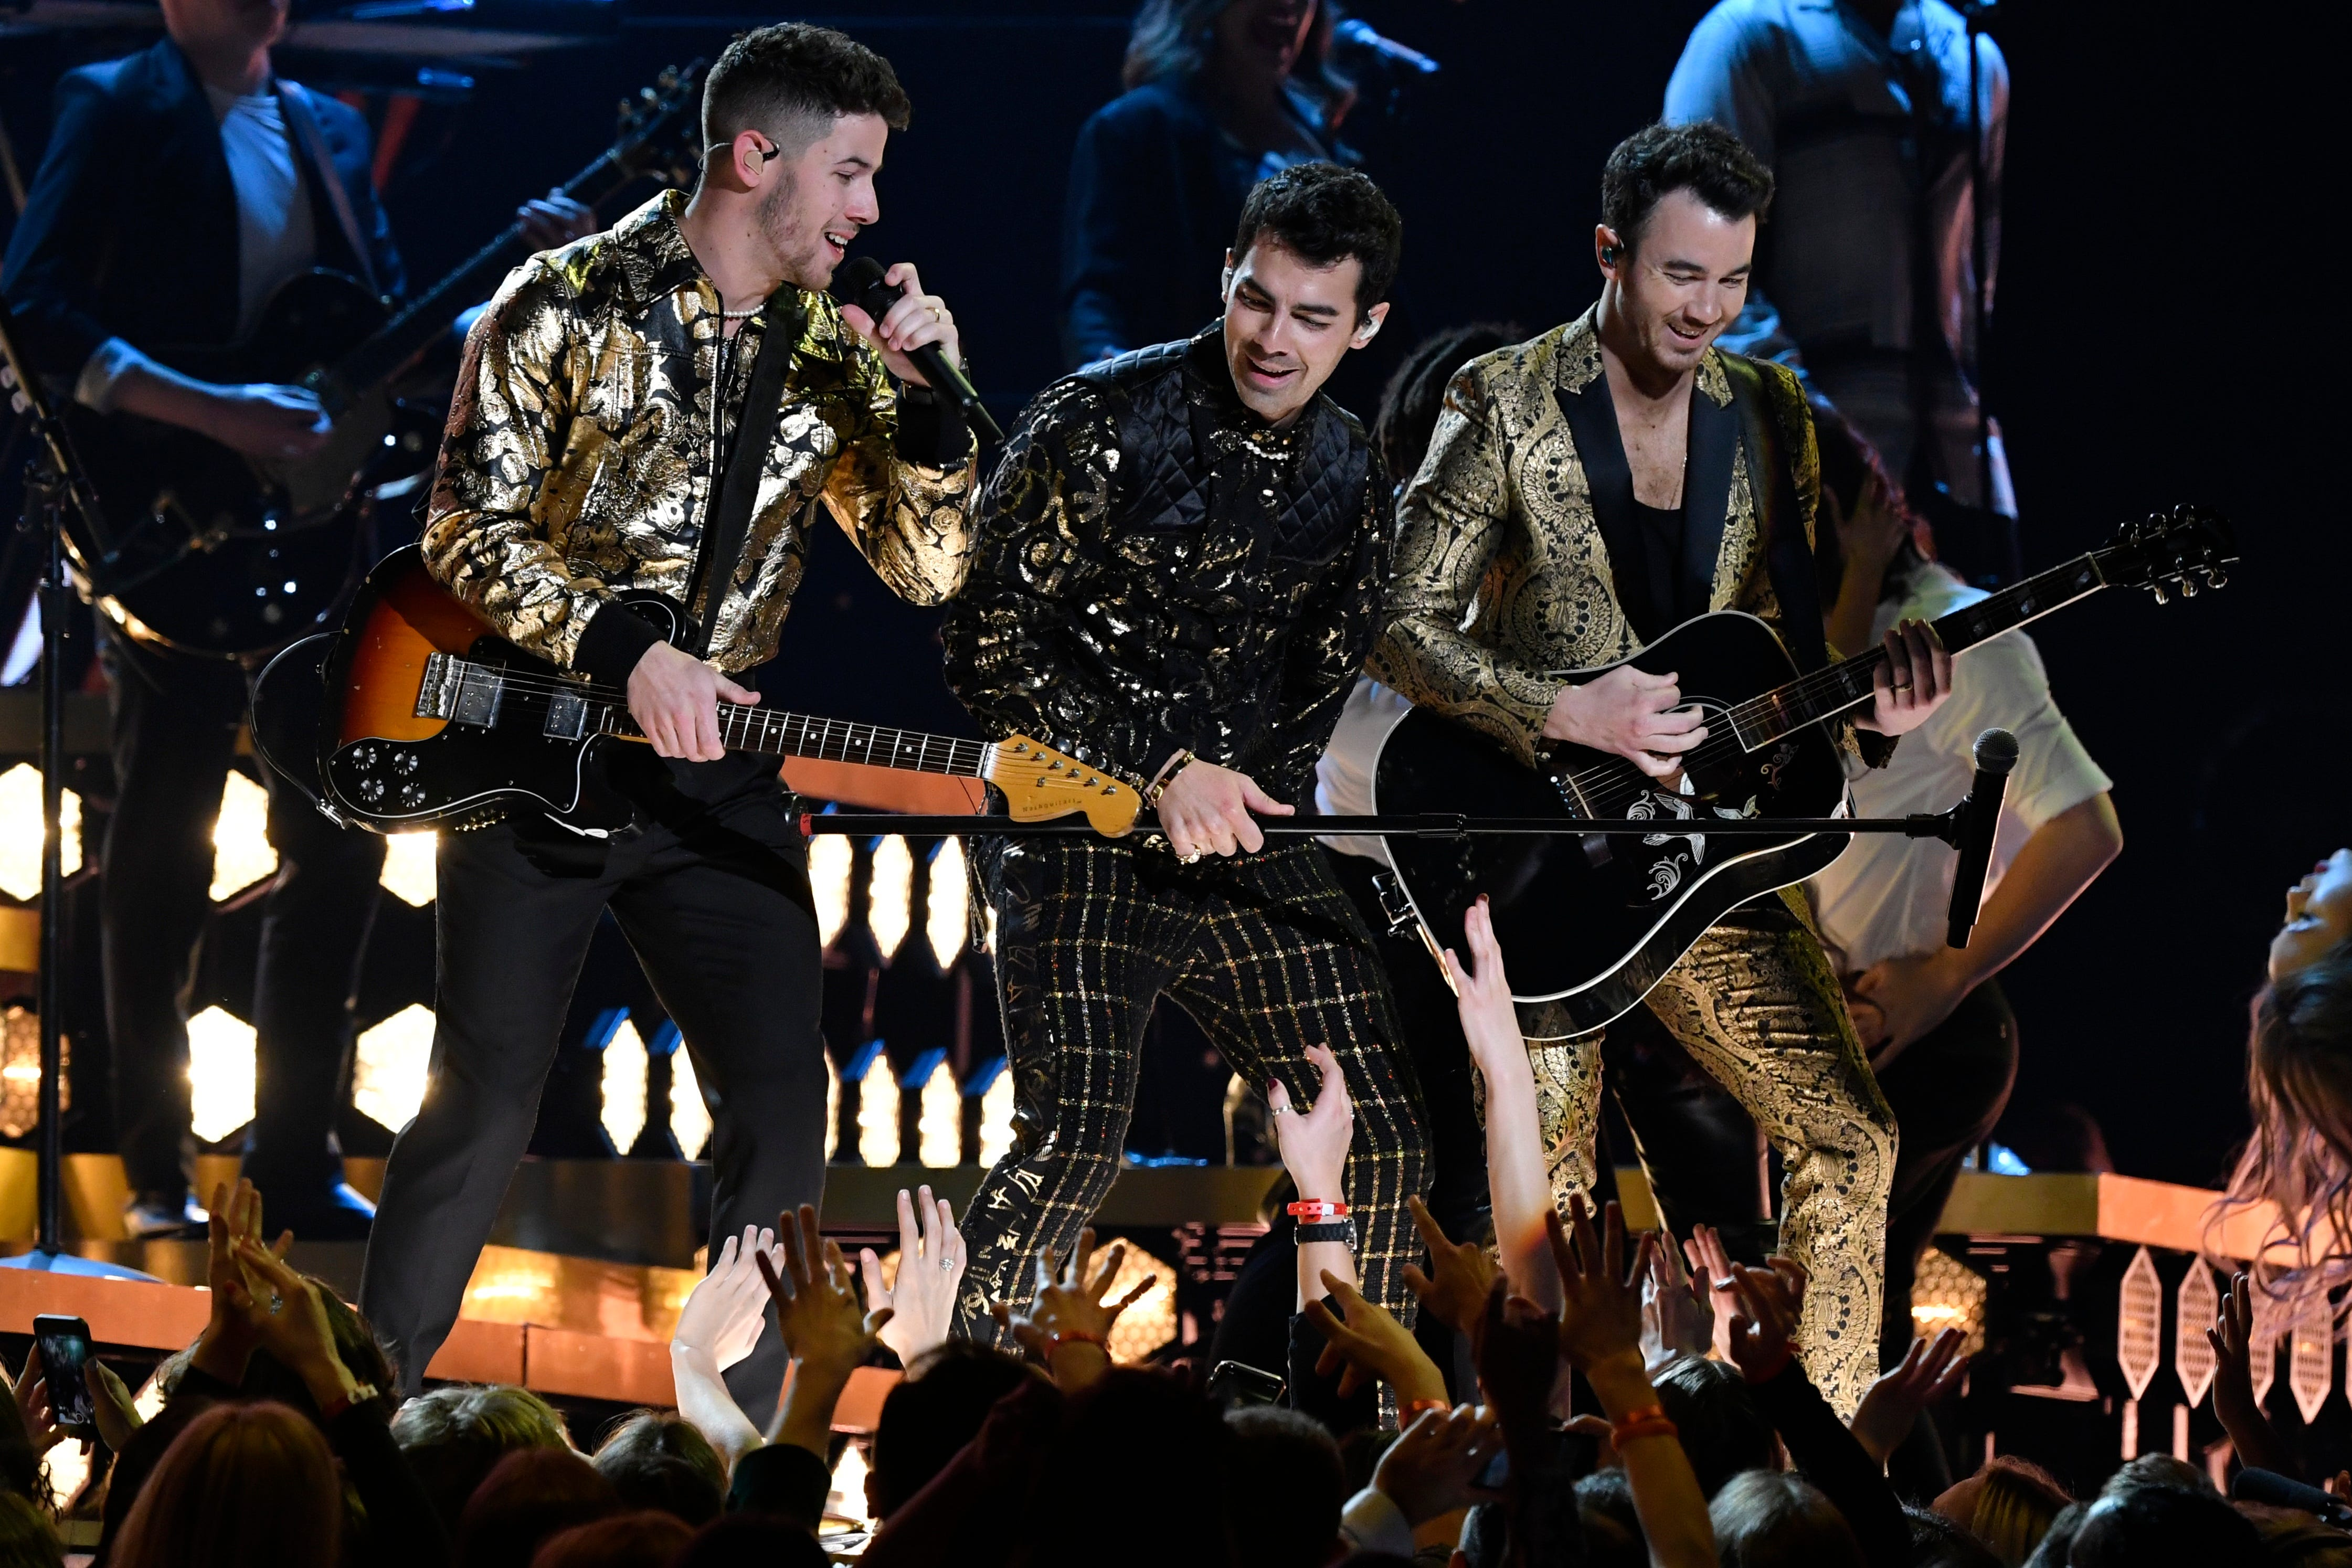 Jacksonville-area concert venues busily booking shows; Jonas Brothers, Lady A, Alice Cooper, Pat Benatar, 311 coming